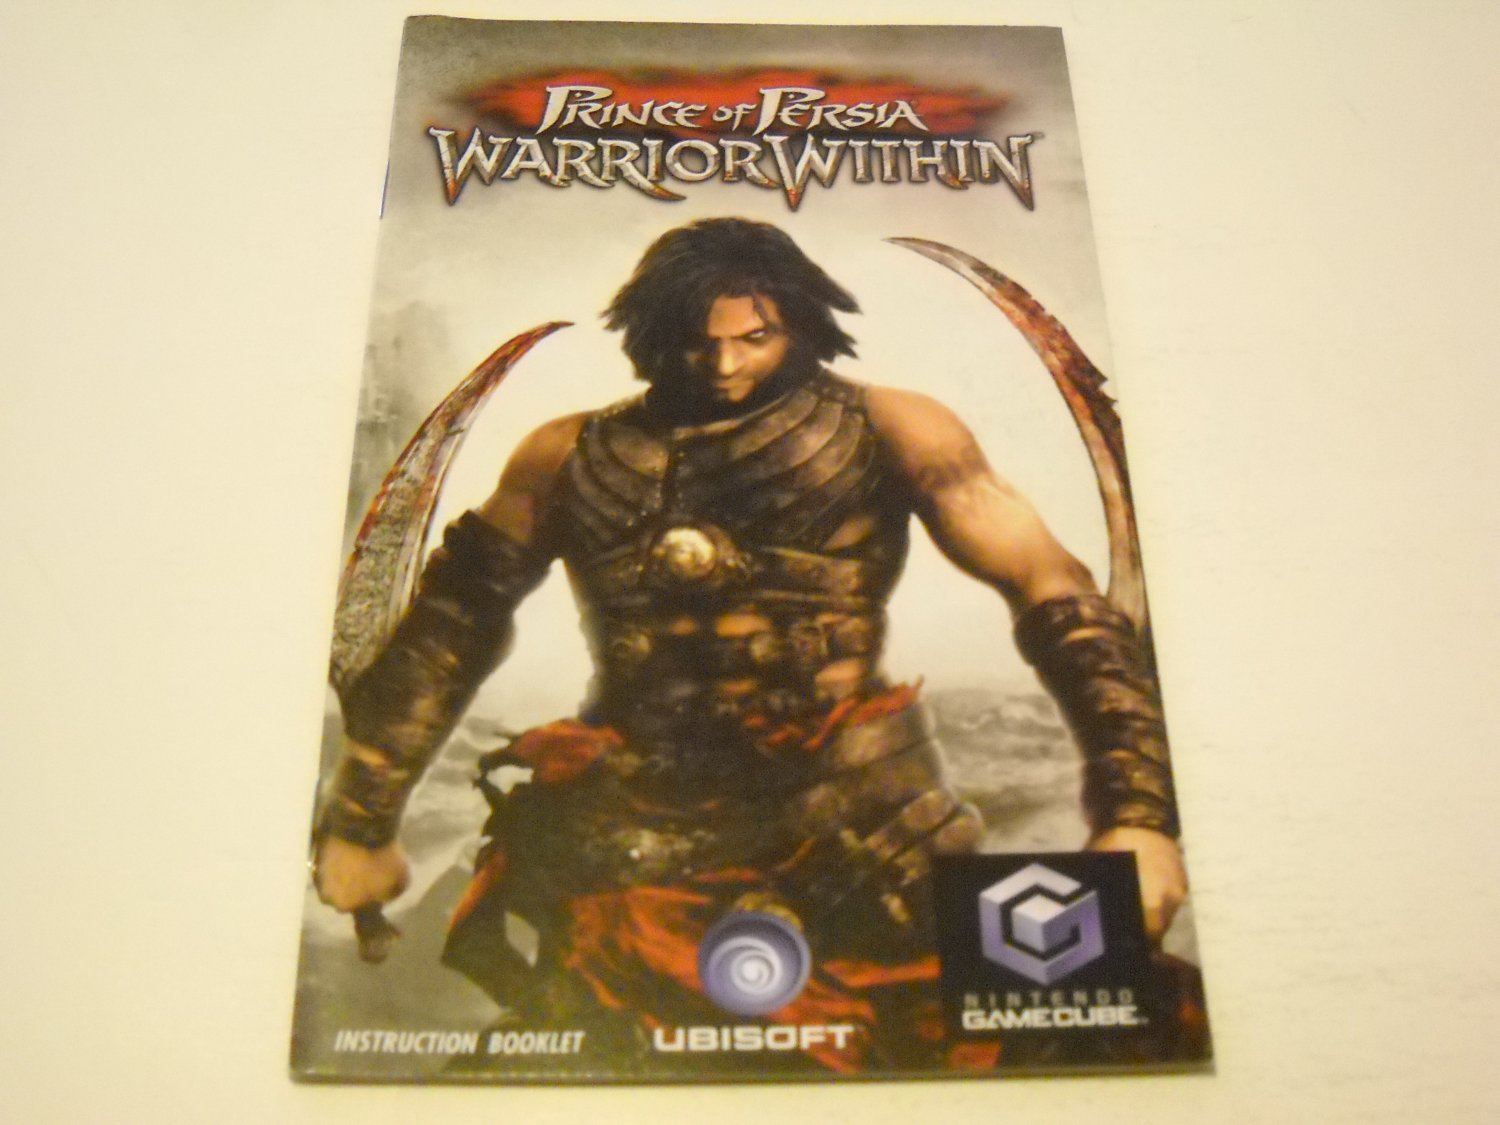 Manual ONLY ~  for Prince of Persia Warrior Within   Gamecube